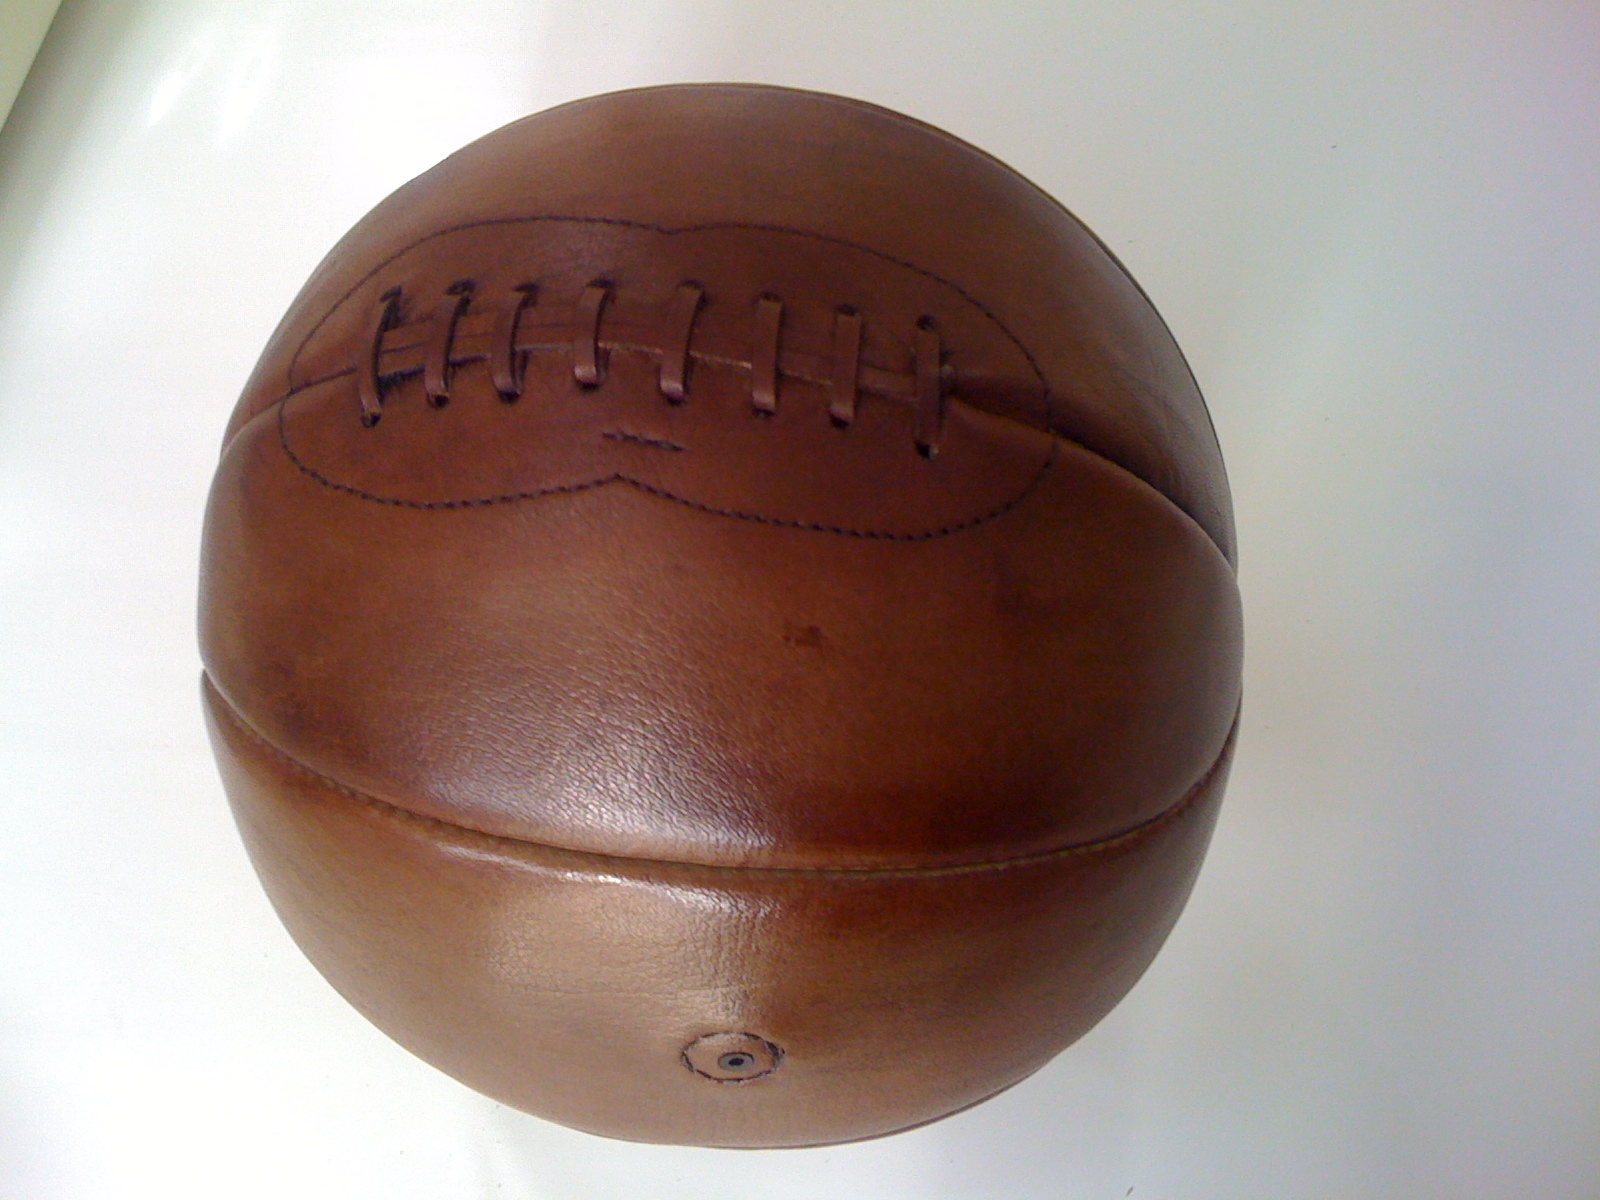 Vintage Leather Basketball ball Manufacturers, Wholesale Suppliers